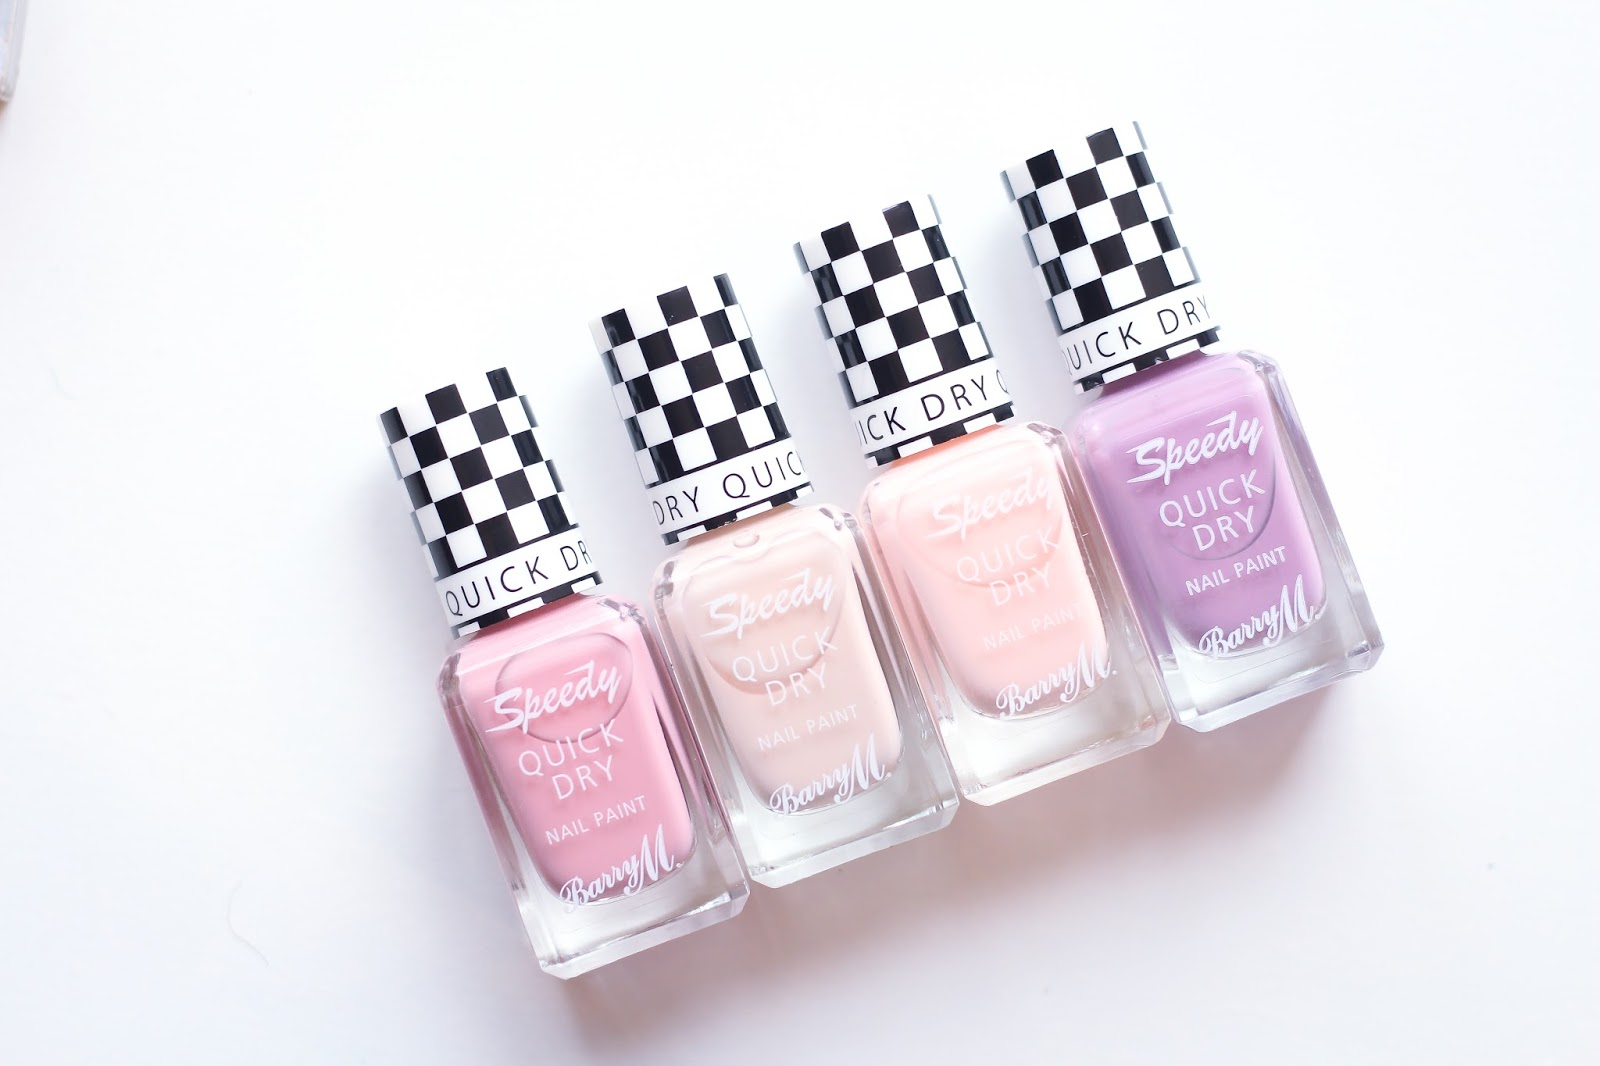 Barry M Speedy Quick Dry Nail Paint Freestyle, Winning Streak, In a flash, Personal Best